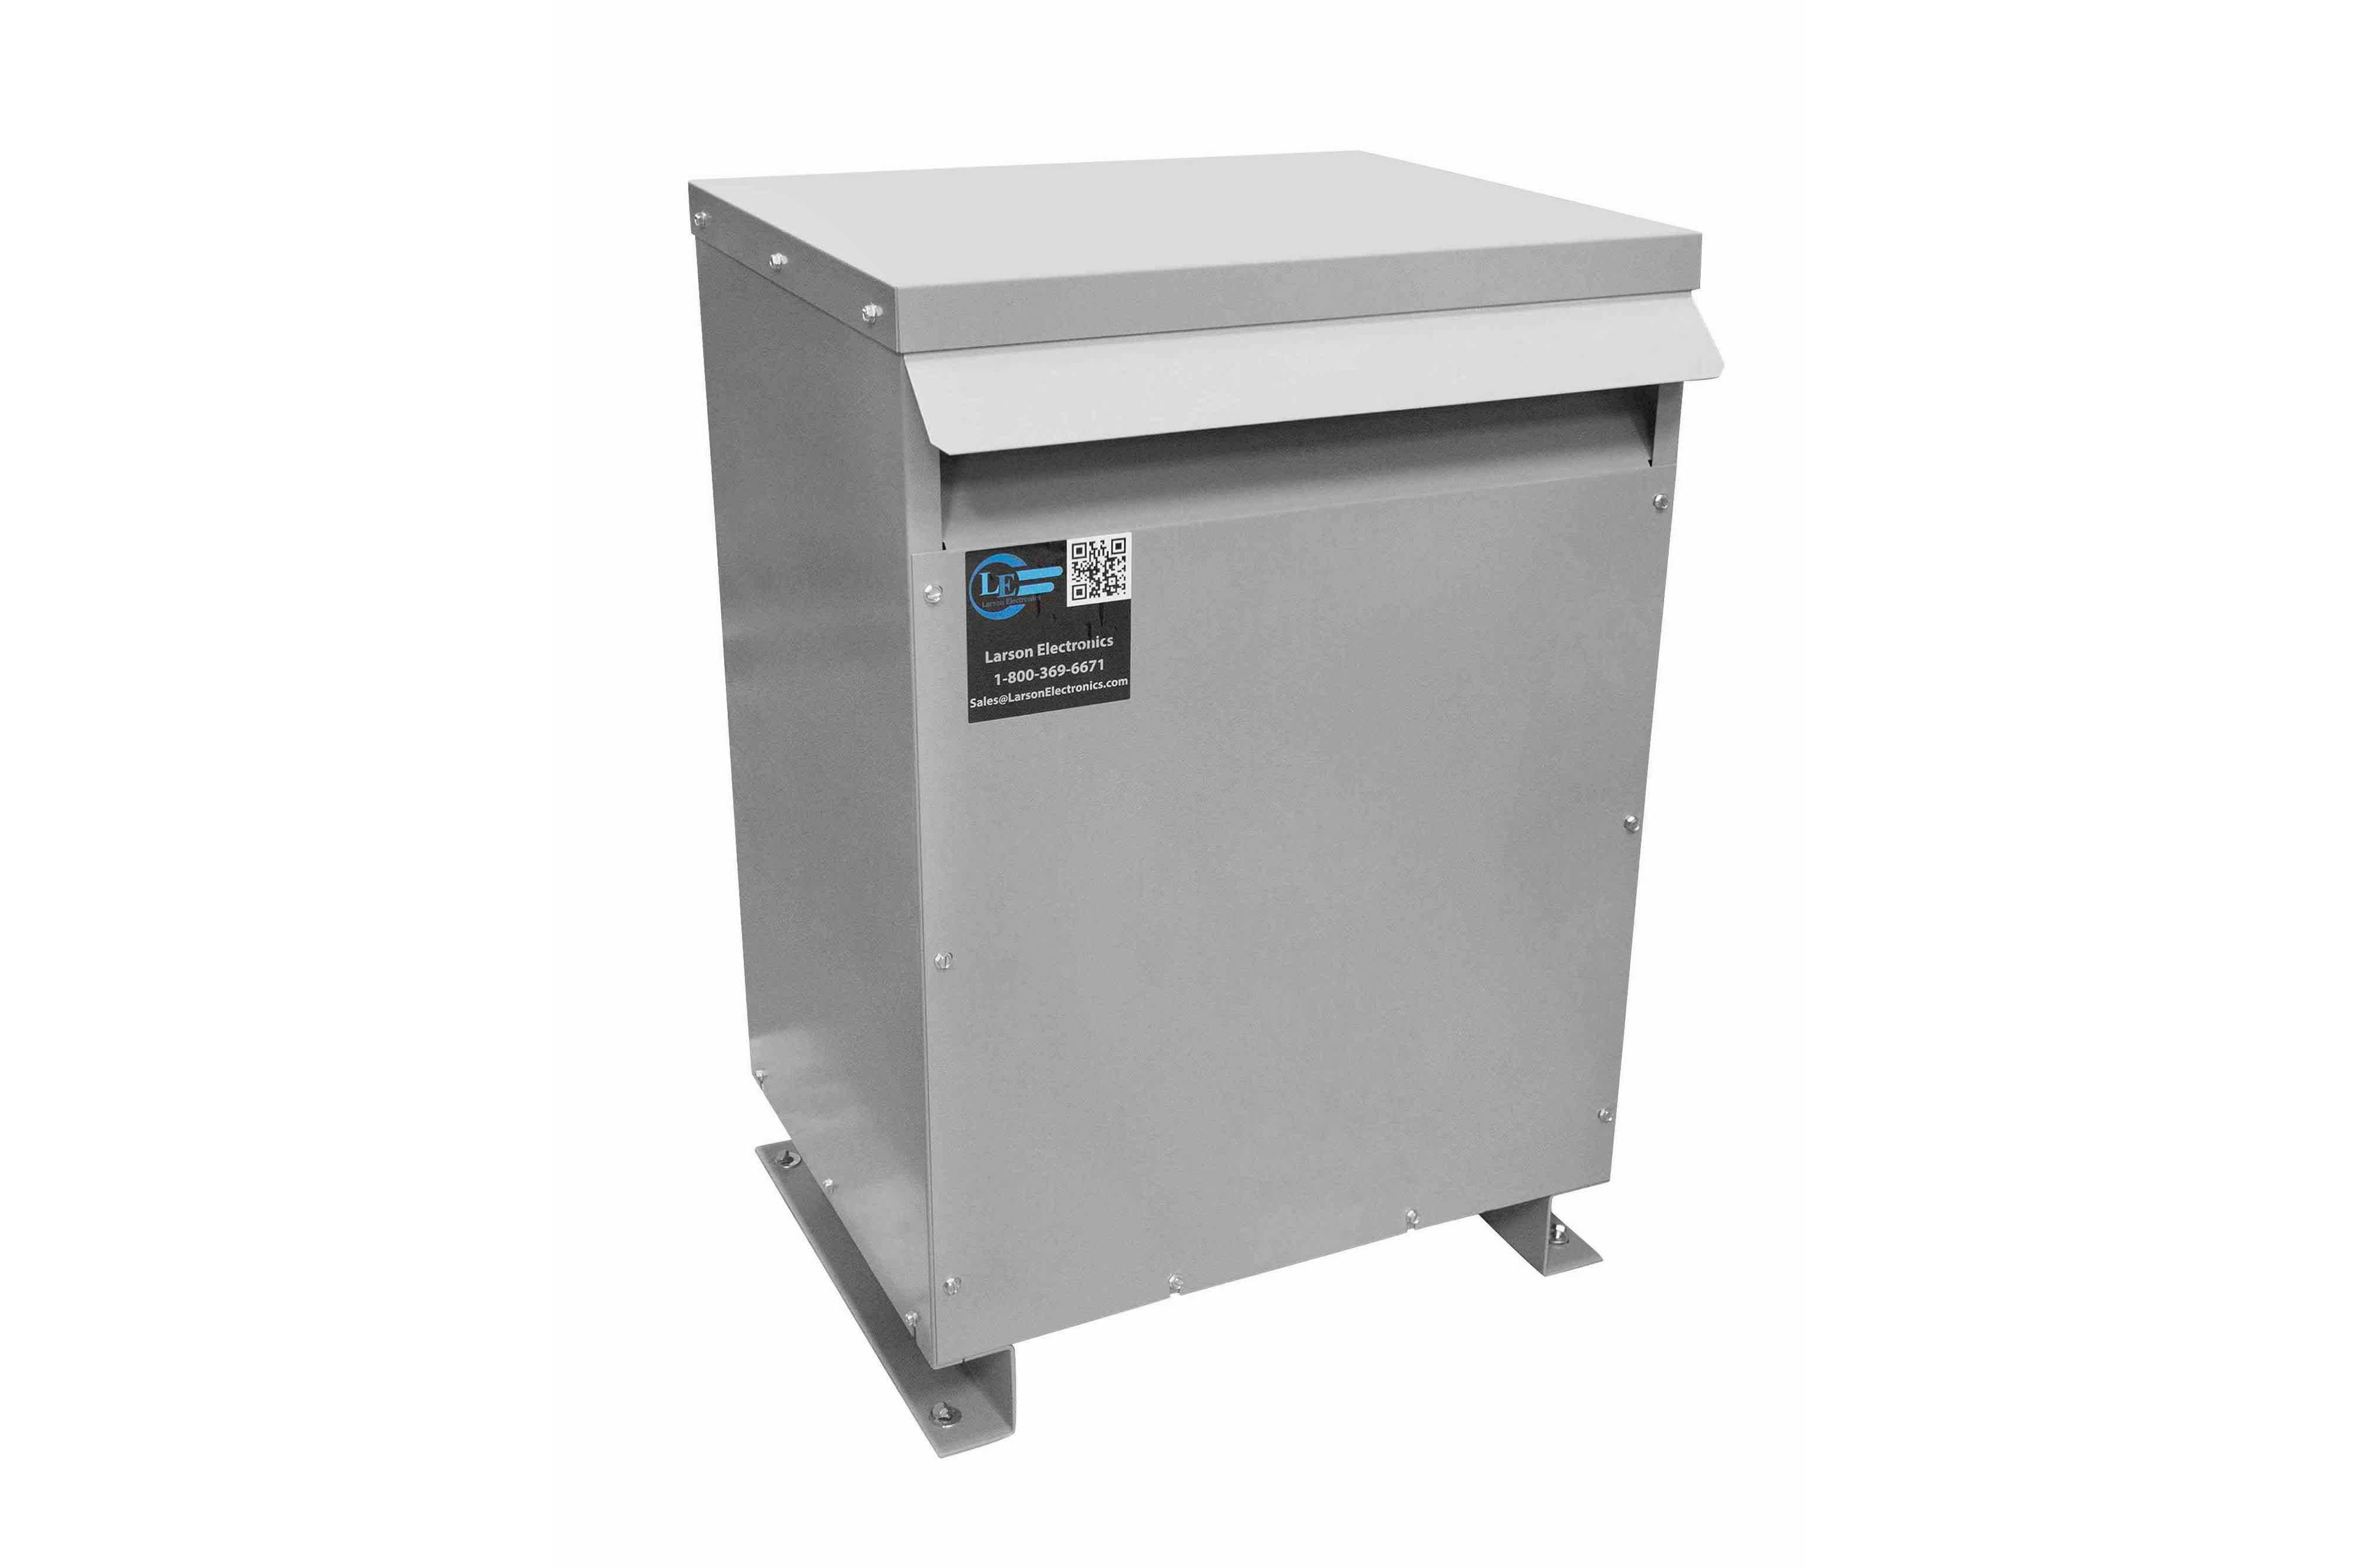 20 kVA 3PH Isolation Transformer, 480V Wye Primary, 380V Delta Secondary, N3R, Ventilated, 60 Hz